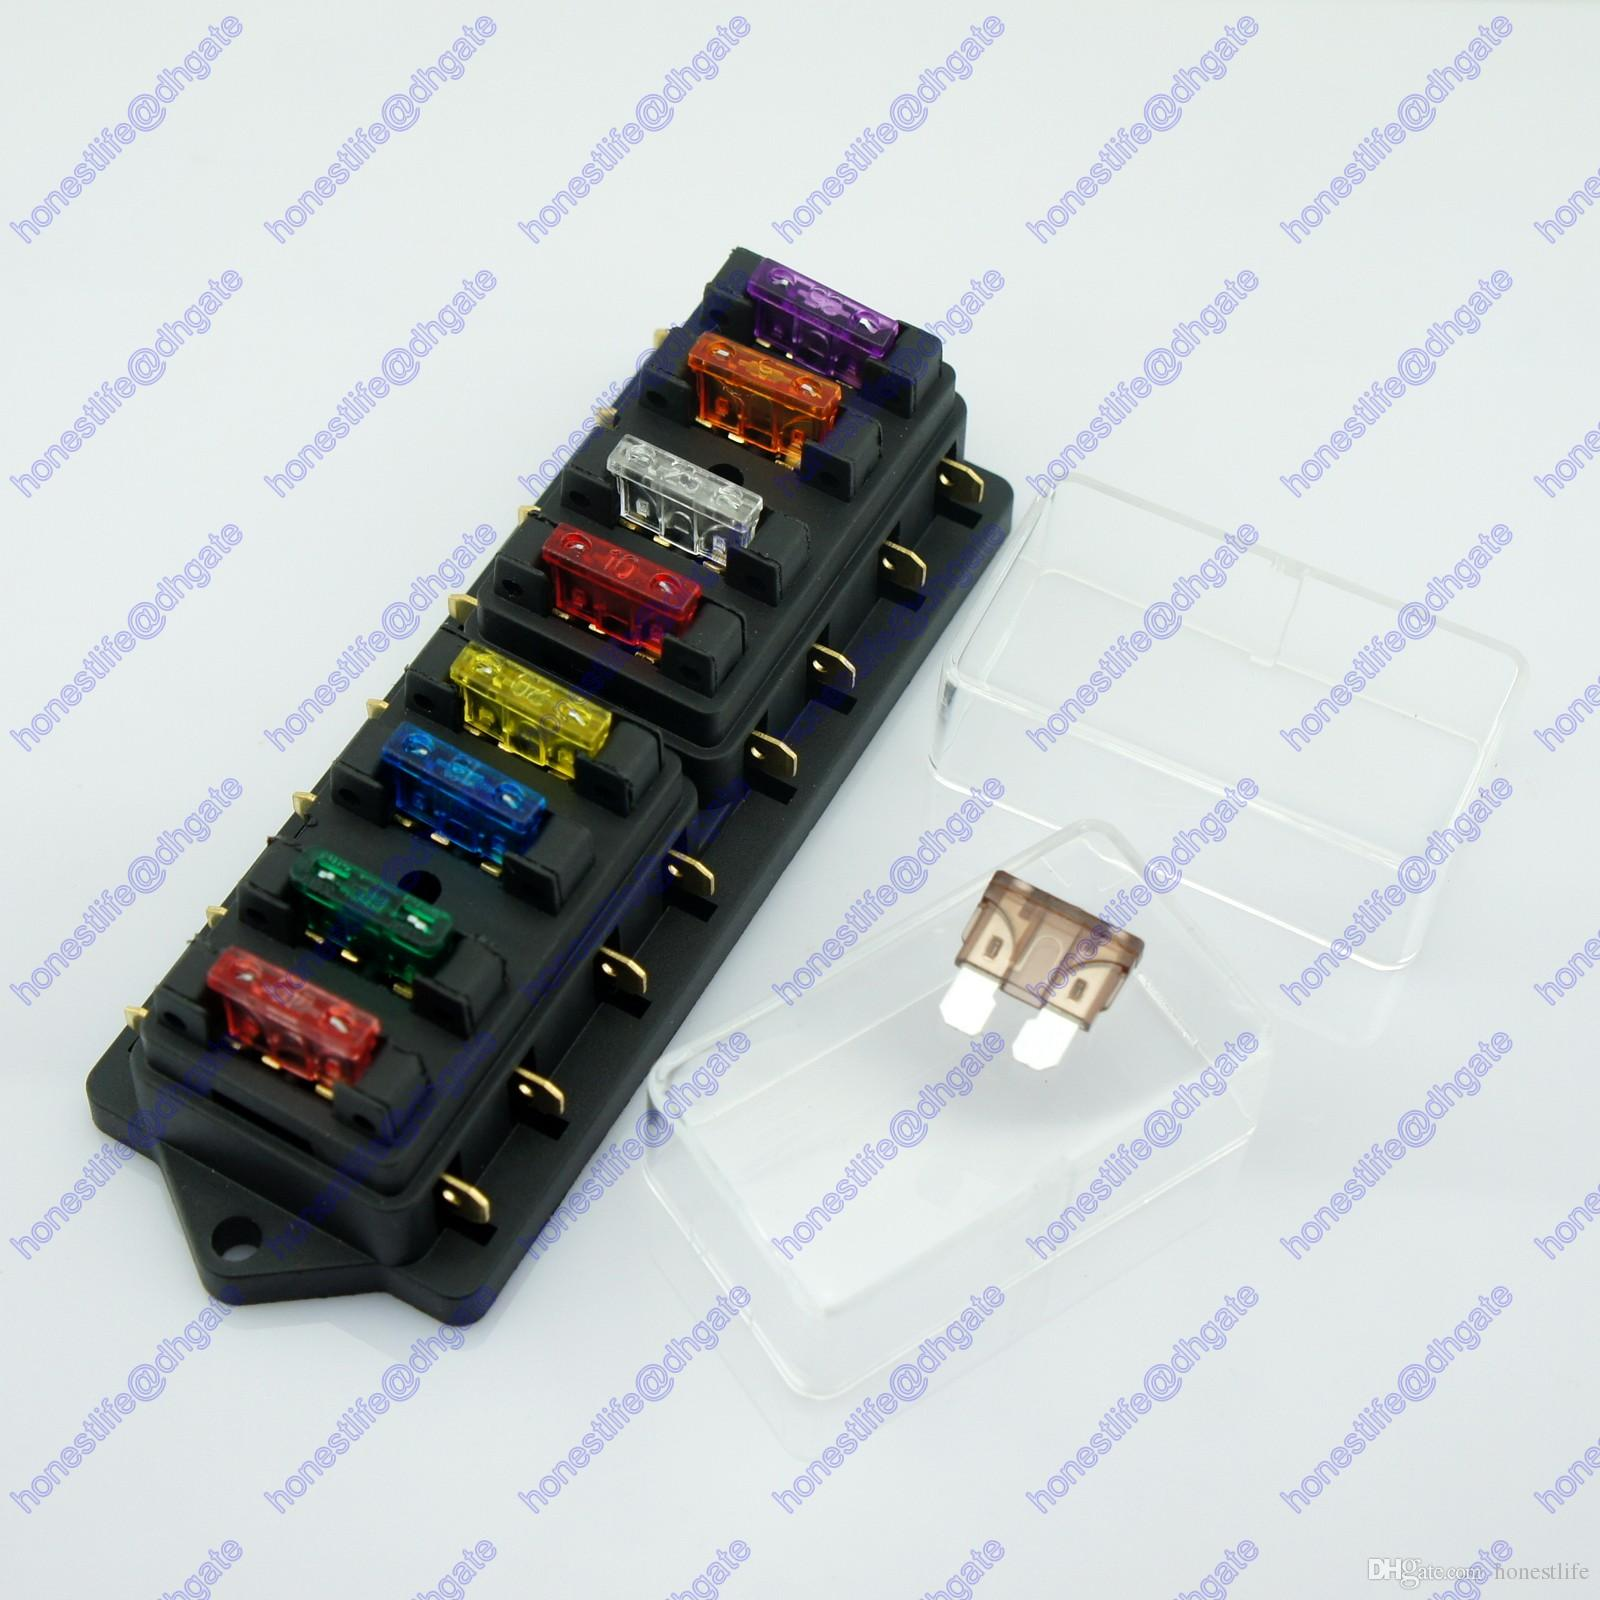 8 way atu standard blade fuse box holder 2017 8 way atu standard blade fuse box holder 12v 24v car truck rv rv fuse box at bakdesigns.co